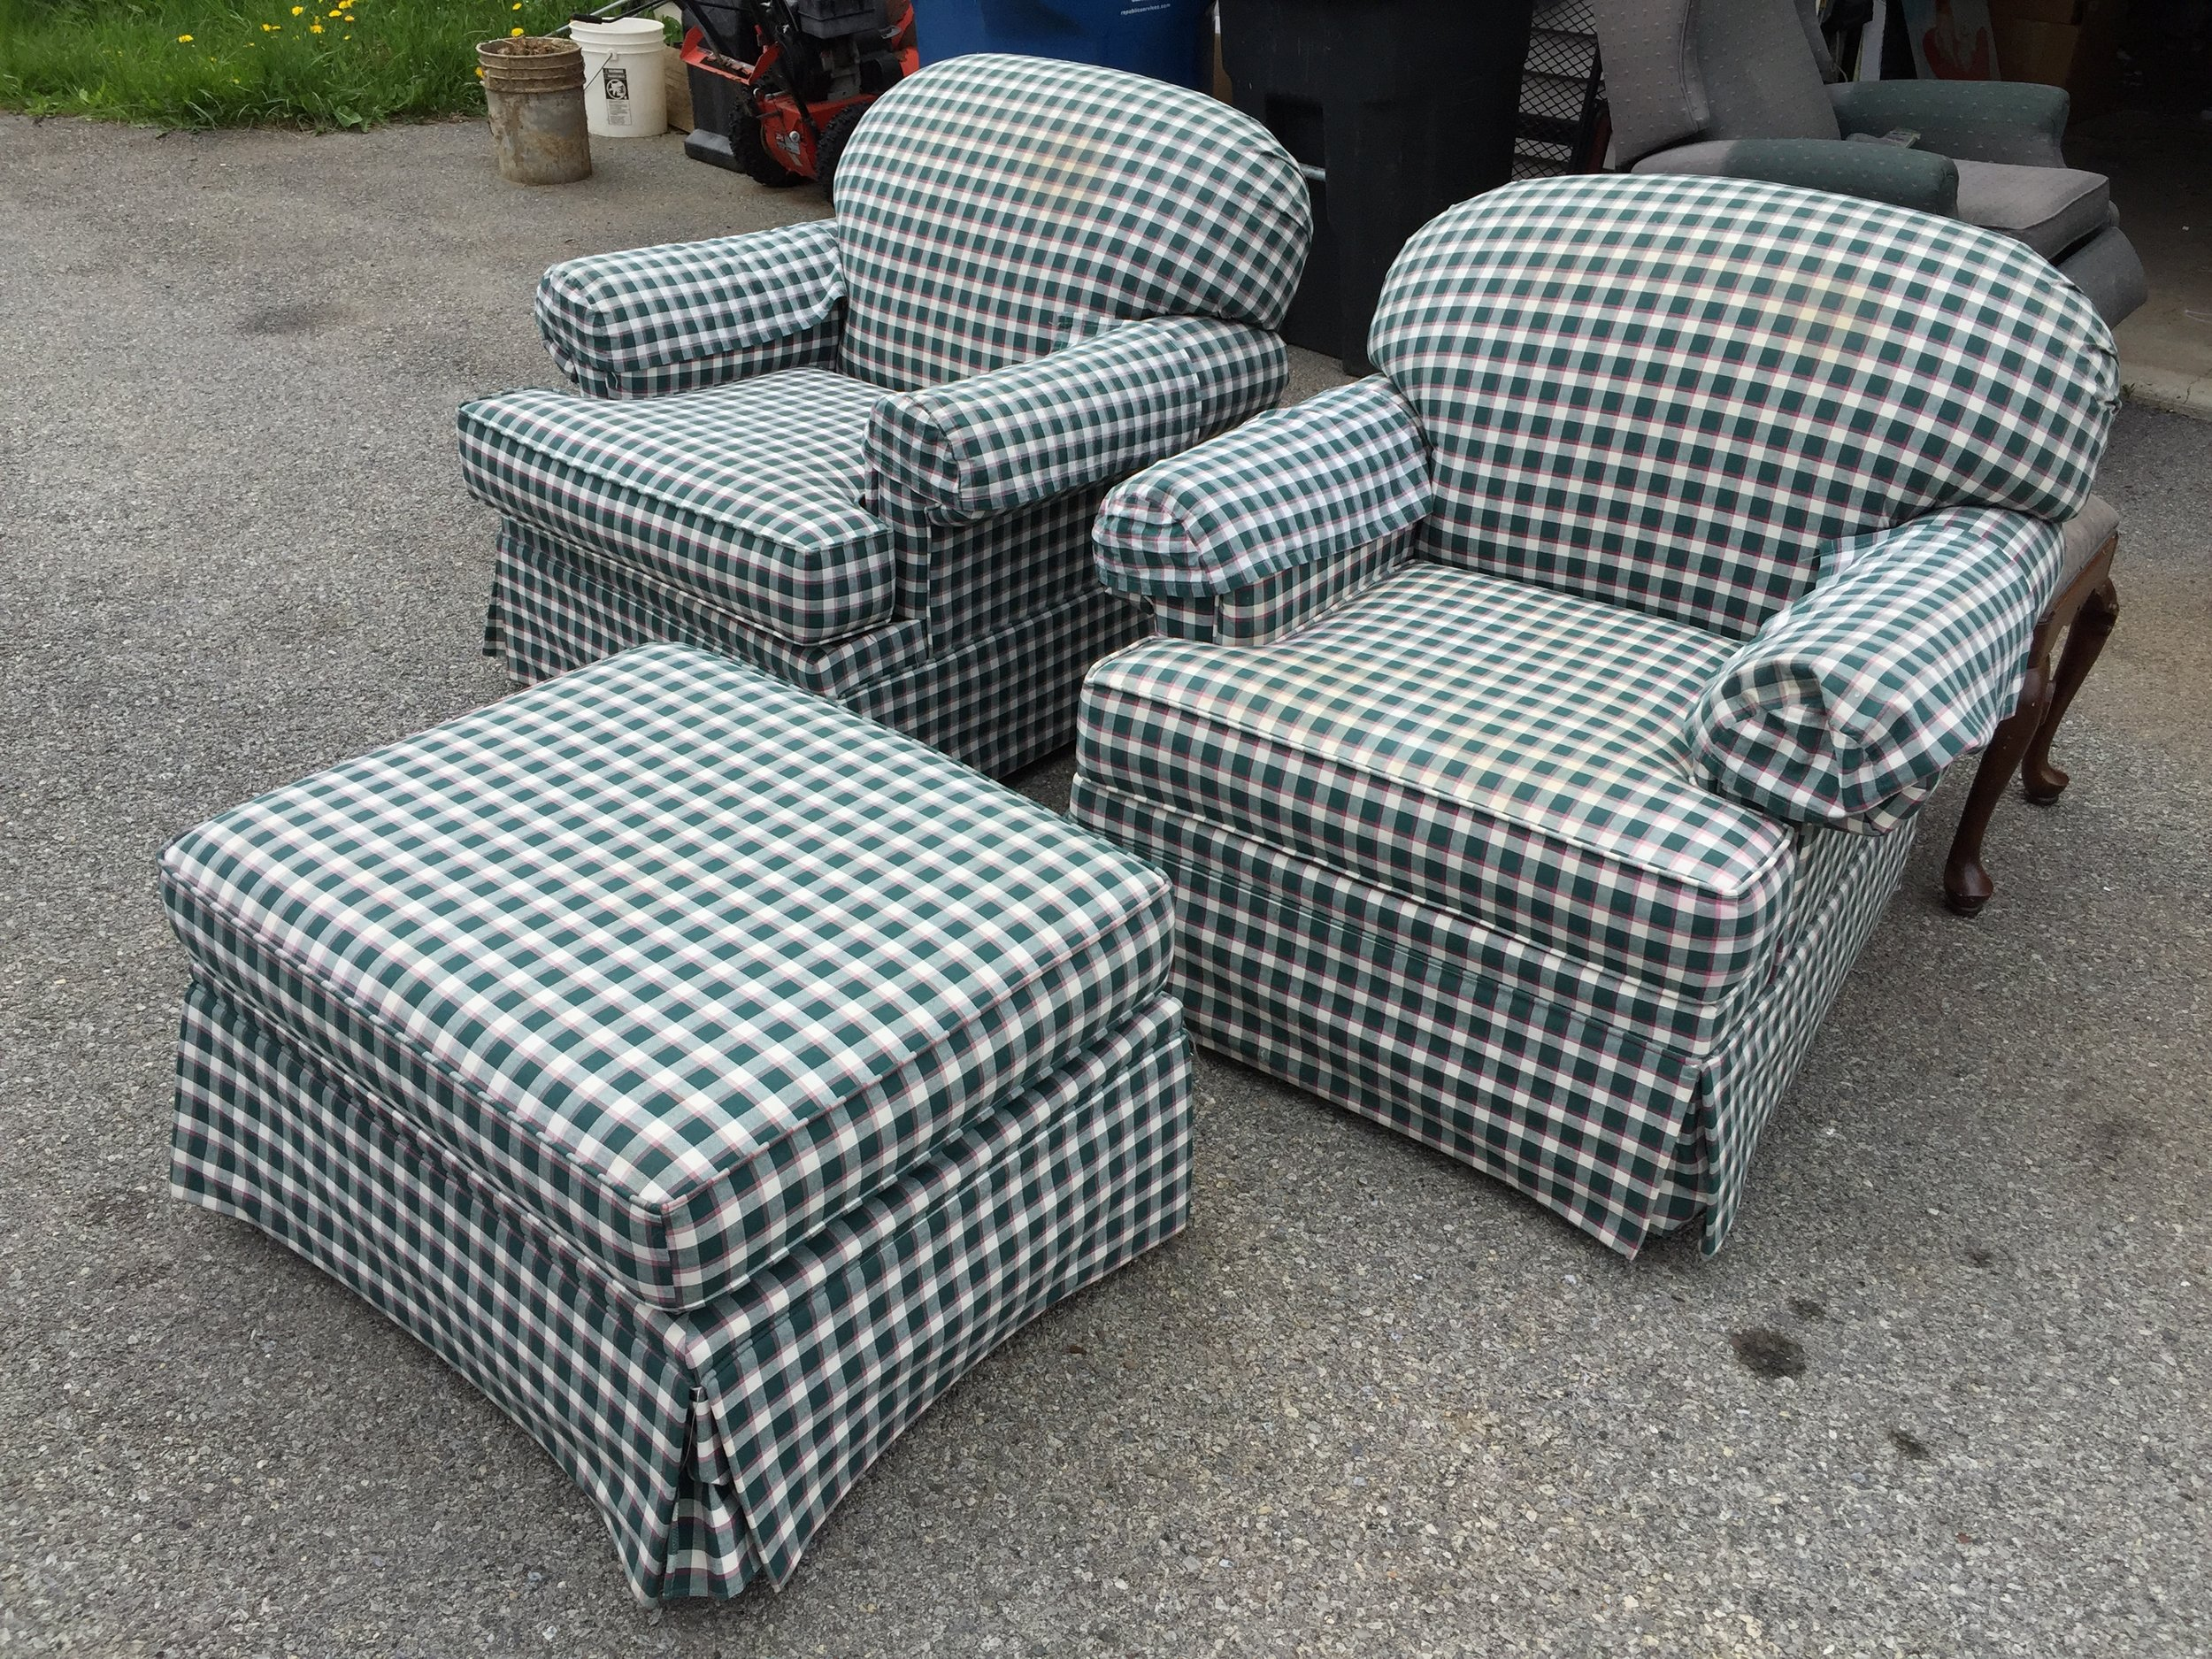 Super set from ROWE FURNITURE. 2 arm chairs and matching ottoman. Structurally superb, no rips or tears in upholstery but it will need a good cleaning. Priced to MOVE at $100 for all 3 pieces.